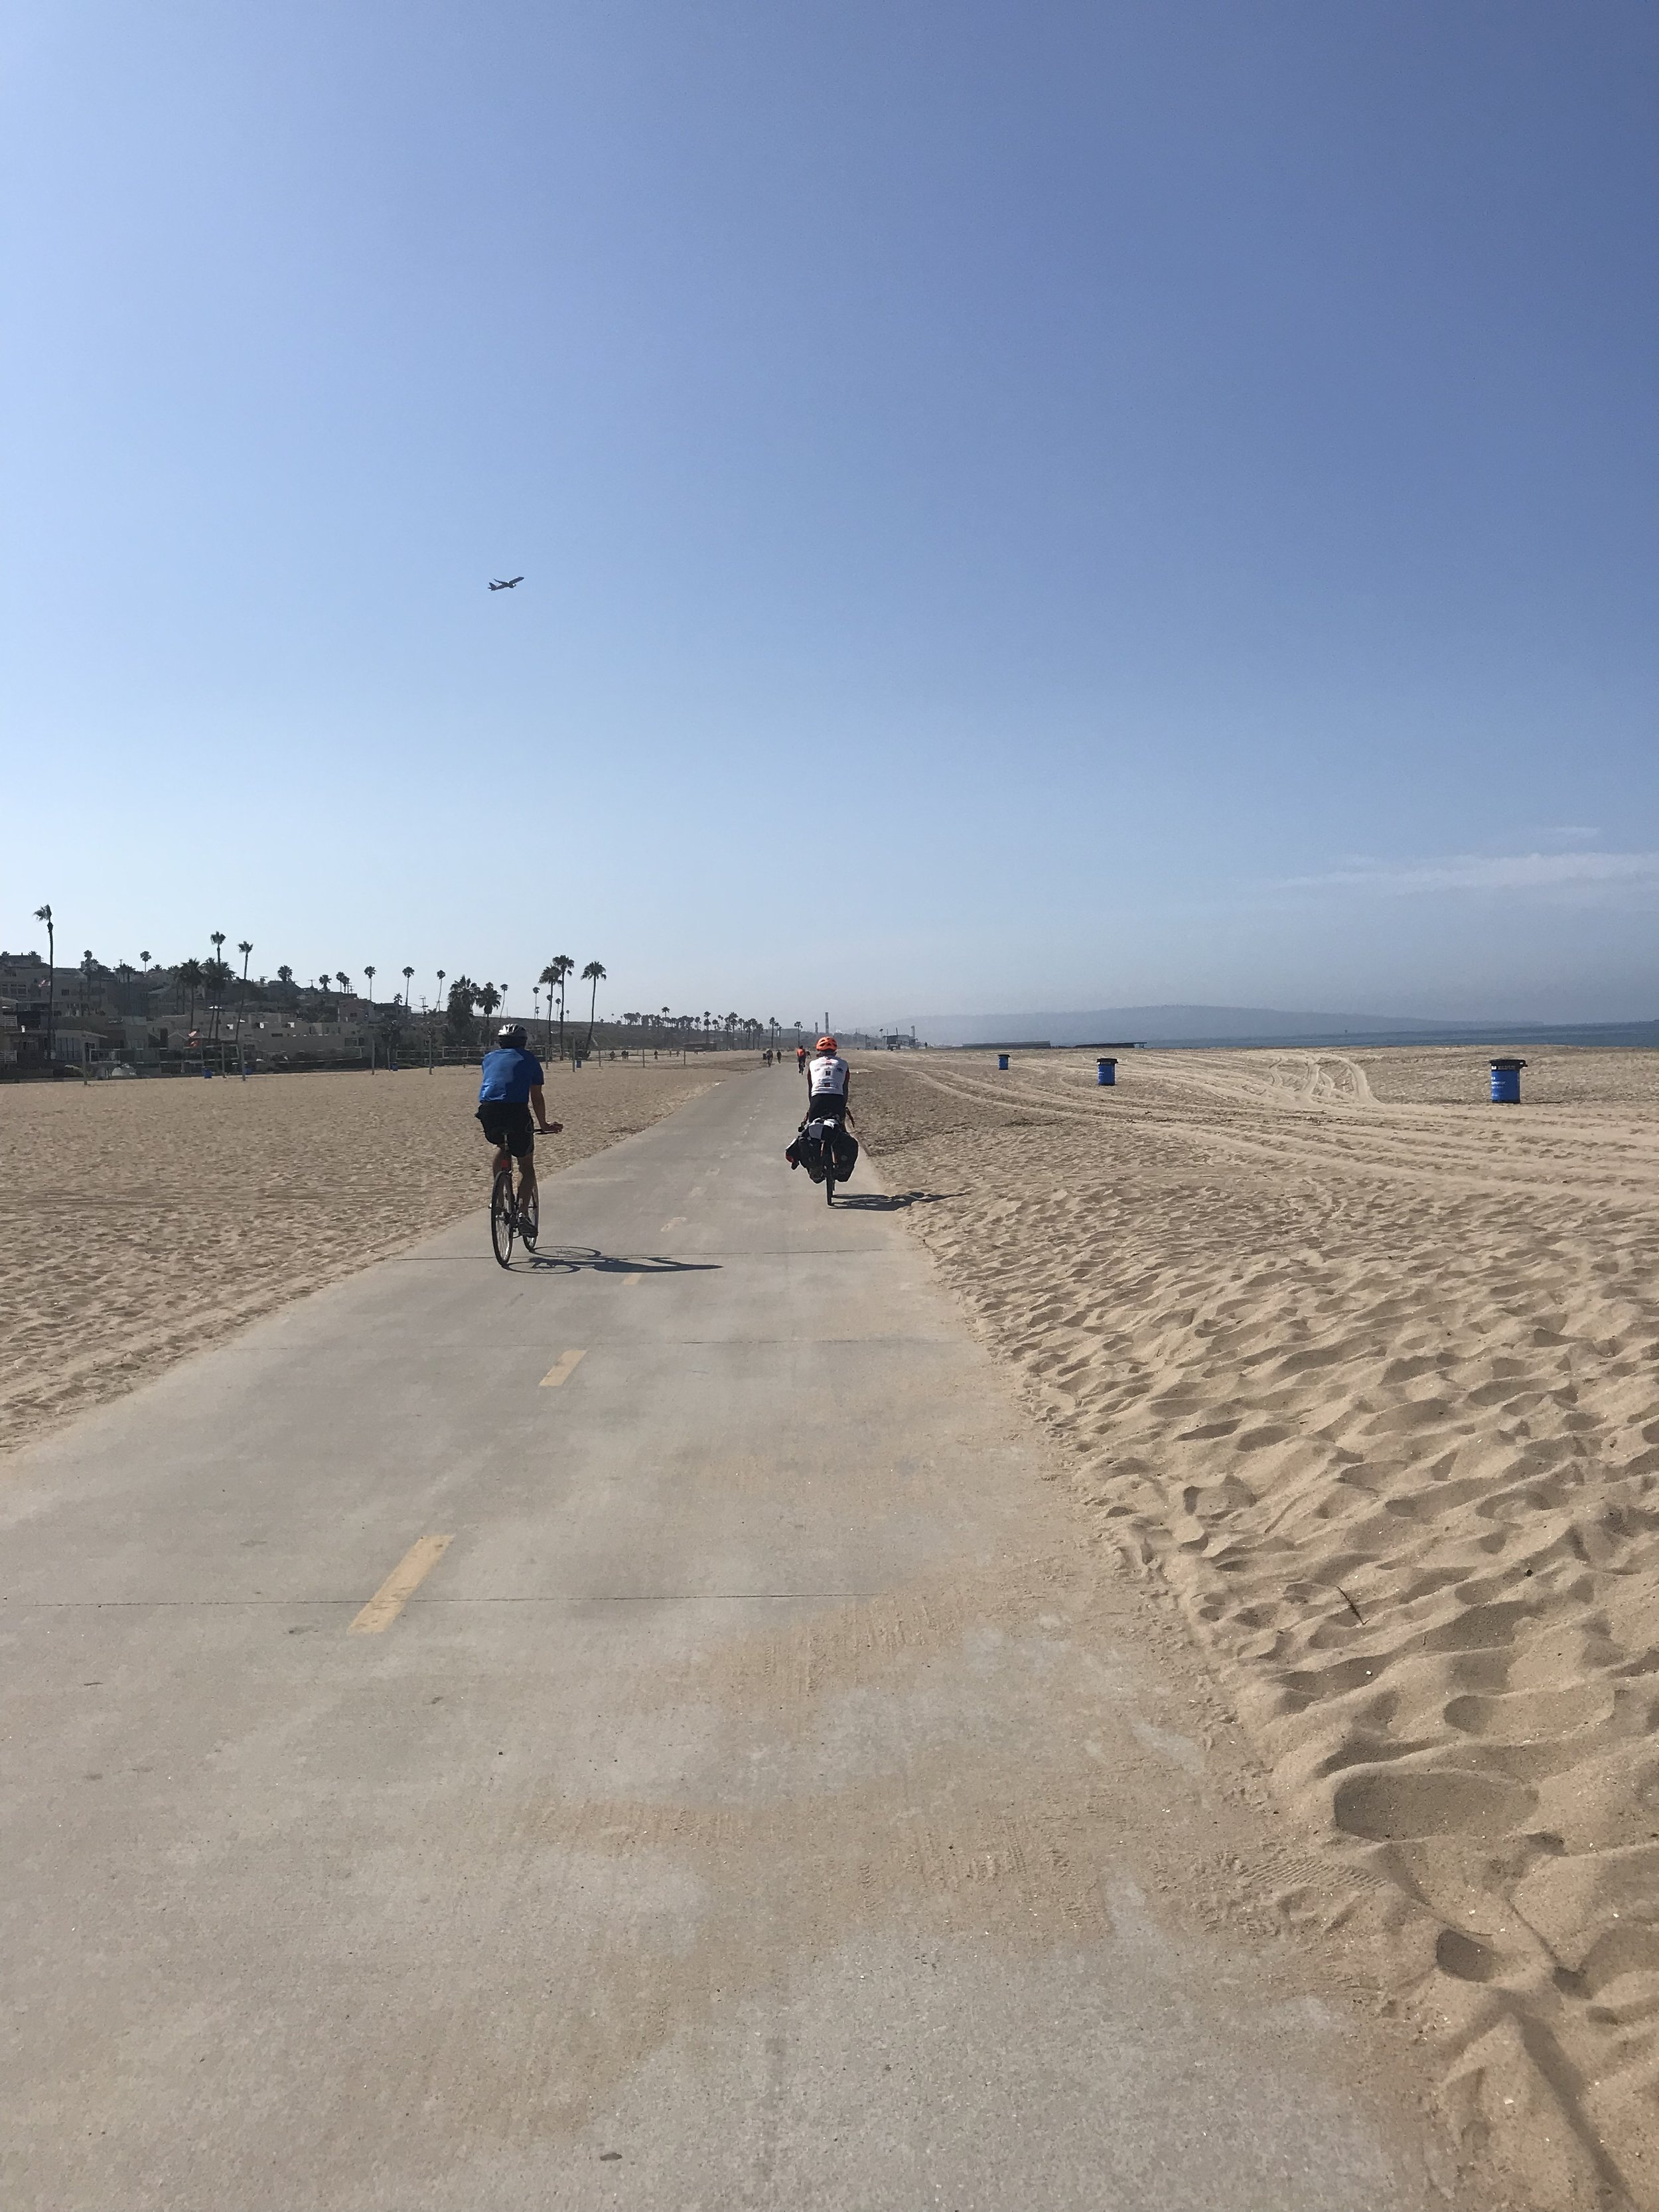 Lots of riding on the beach through LA!